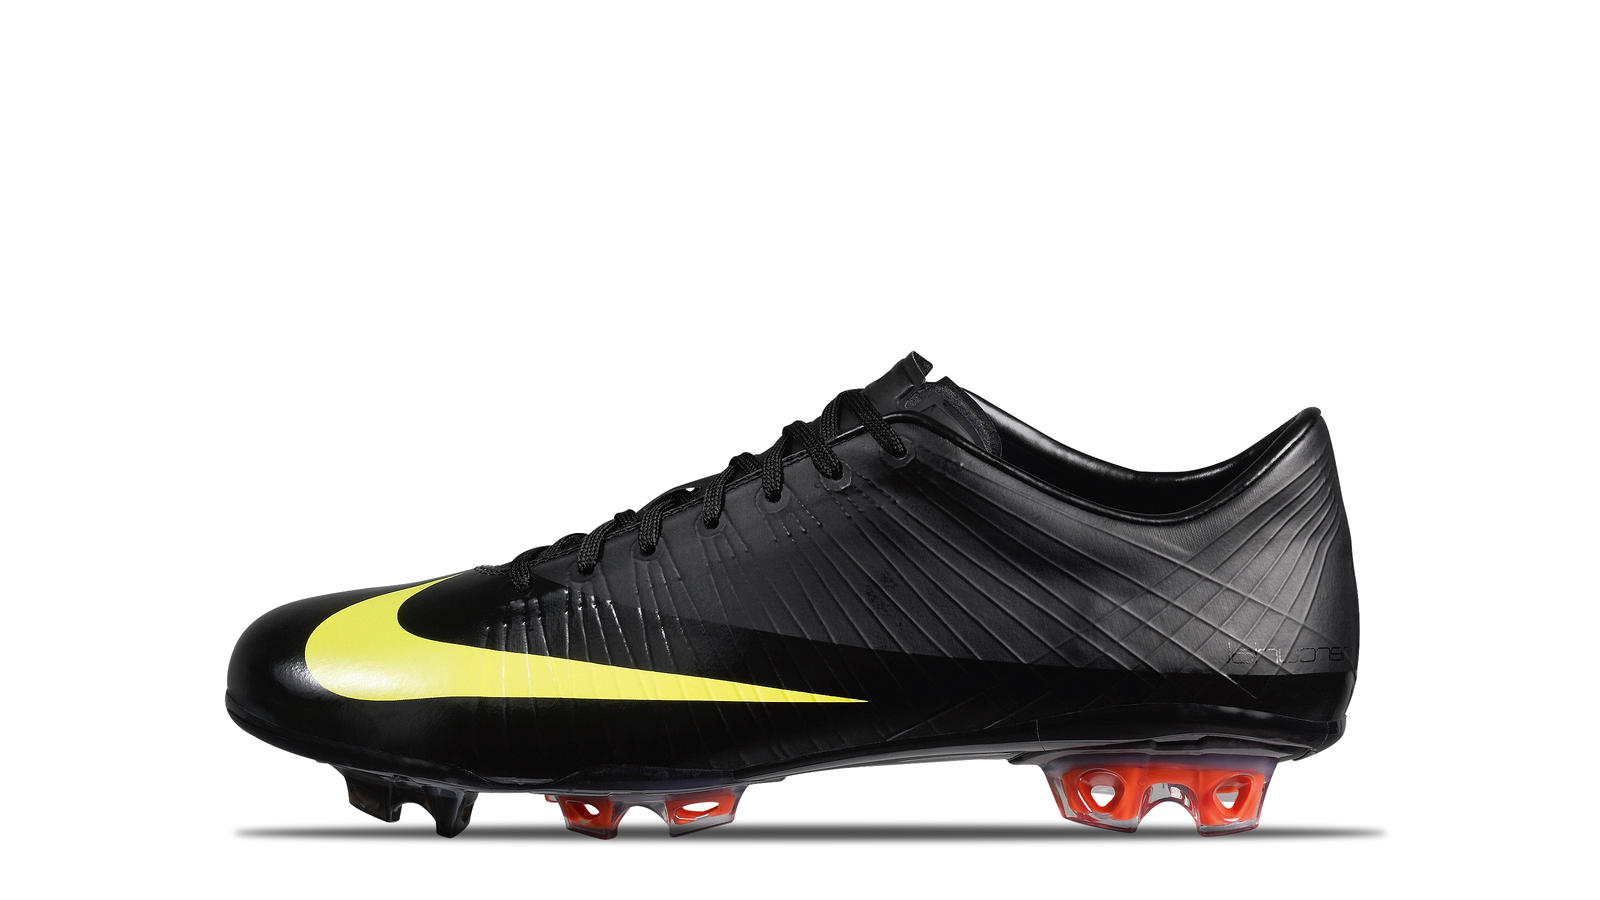 2009-Mercurial-Vapor-Superfly-Black-Yellow-Orange